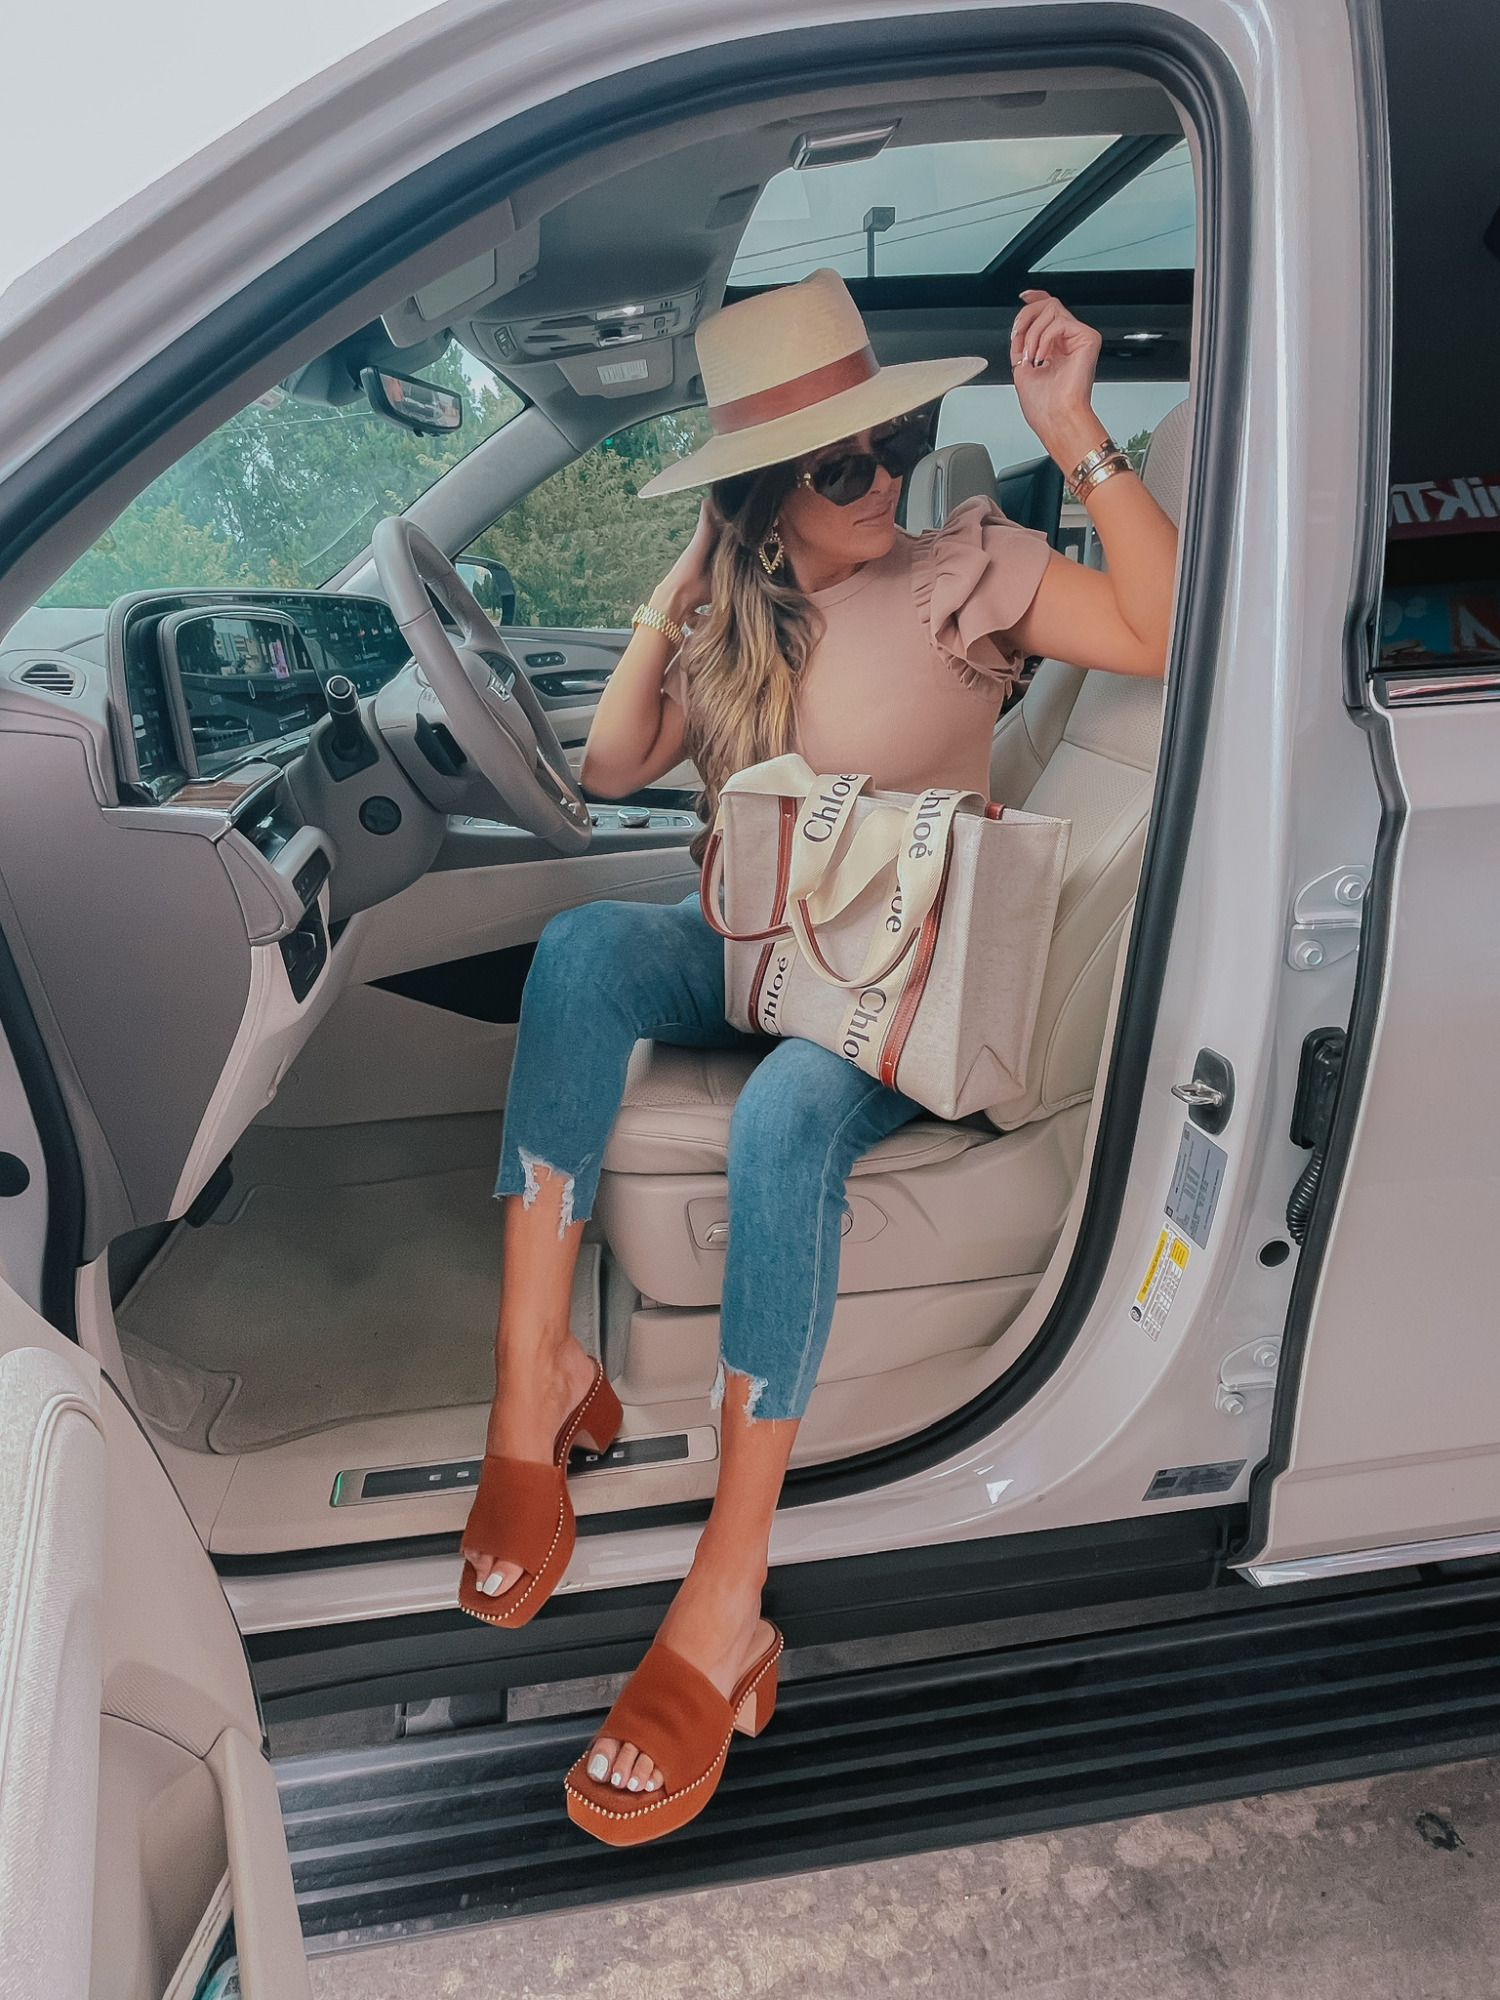 Emily Ann Gemma, Emily Gemma Outfit Ideas, Chloe Tote Bag, Express Jeans, Express Top, Ruffle Sleeve Tank Top, Antonio Melanie Slides, Fall Shoes   Instagram Recap by popular US life and style blog, The Sweetest Thing: image of Emily Gemma sitting her SUV and wearing a Express tan ruffle sleeve top, Express distressed jeans, Gianni Bini mule sandals, felt fedora hat and Chloe bag.